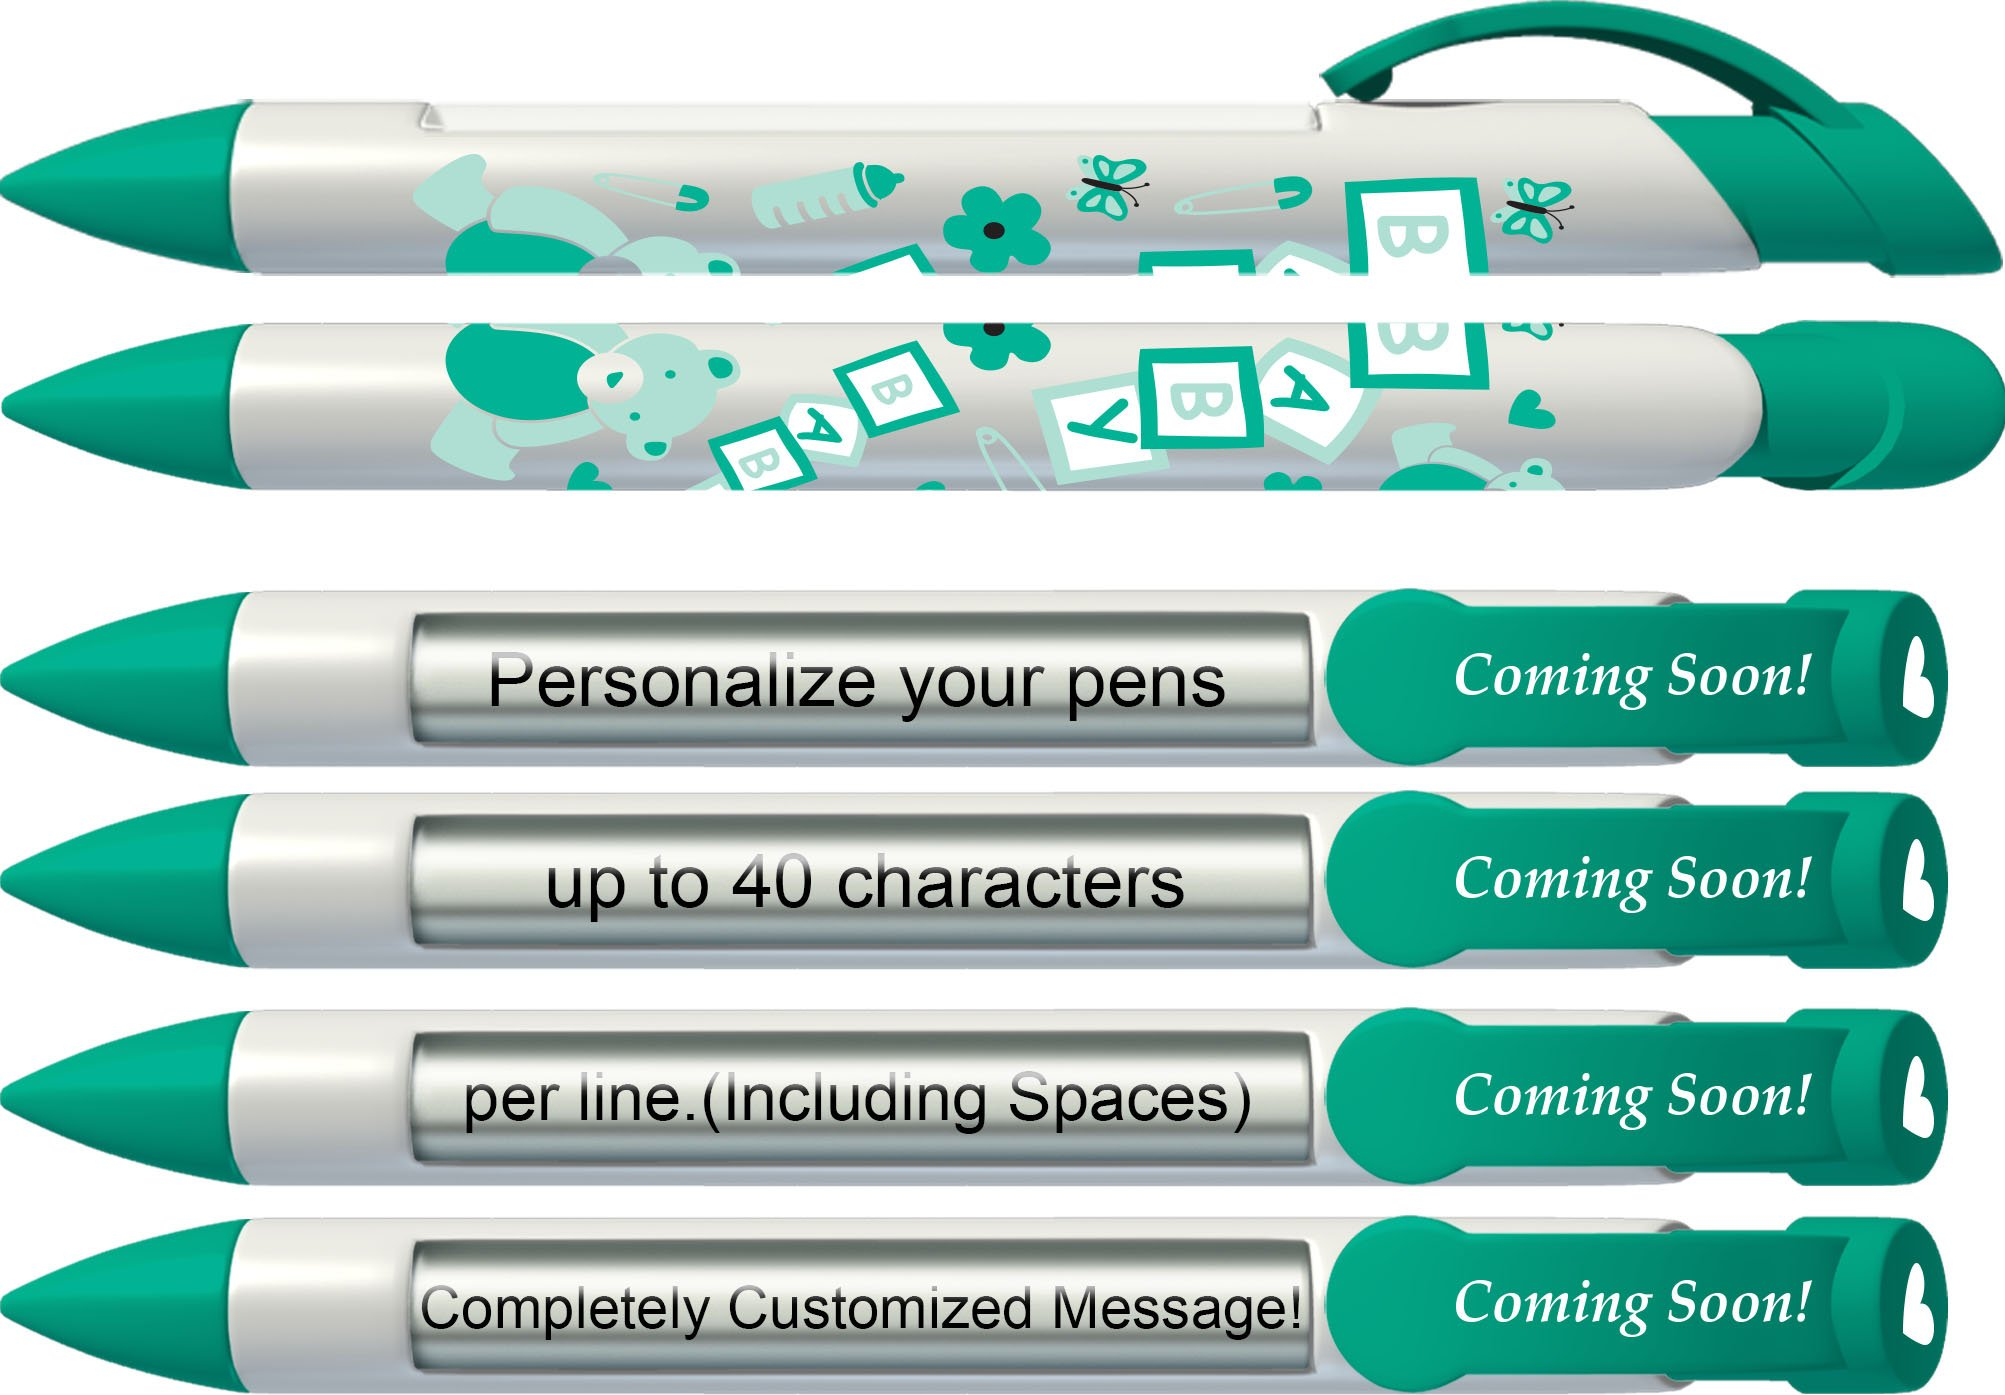 Baby Pen by Greeting Pen- Personalized Birth Announcement Pens- Baby Coming Soon Rotating Message Pen 50 pack (P-BP-27-50) by Greeting Pen (Image #1)